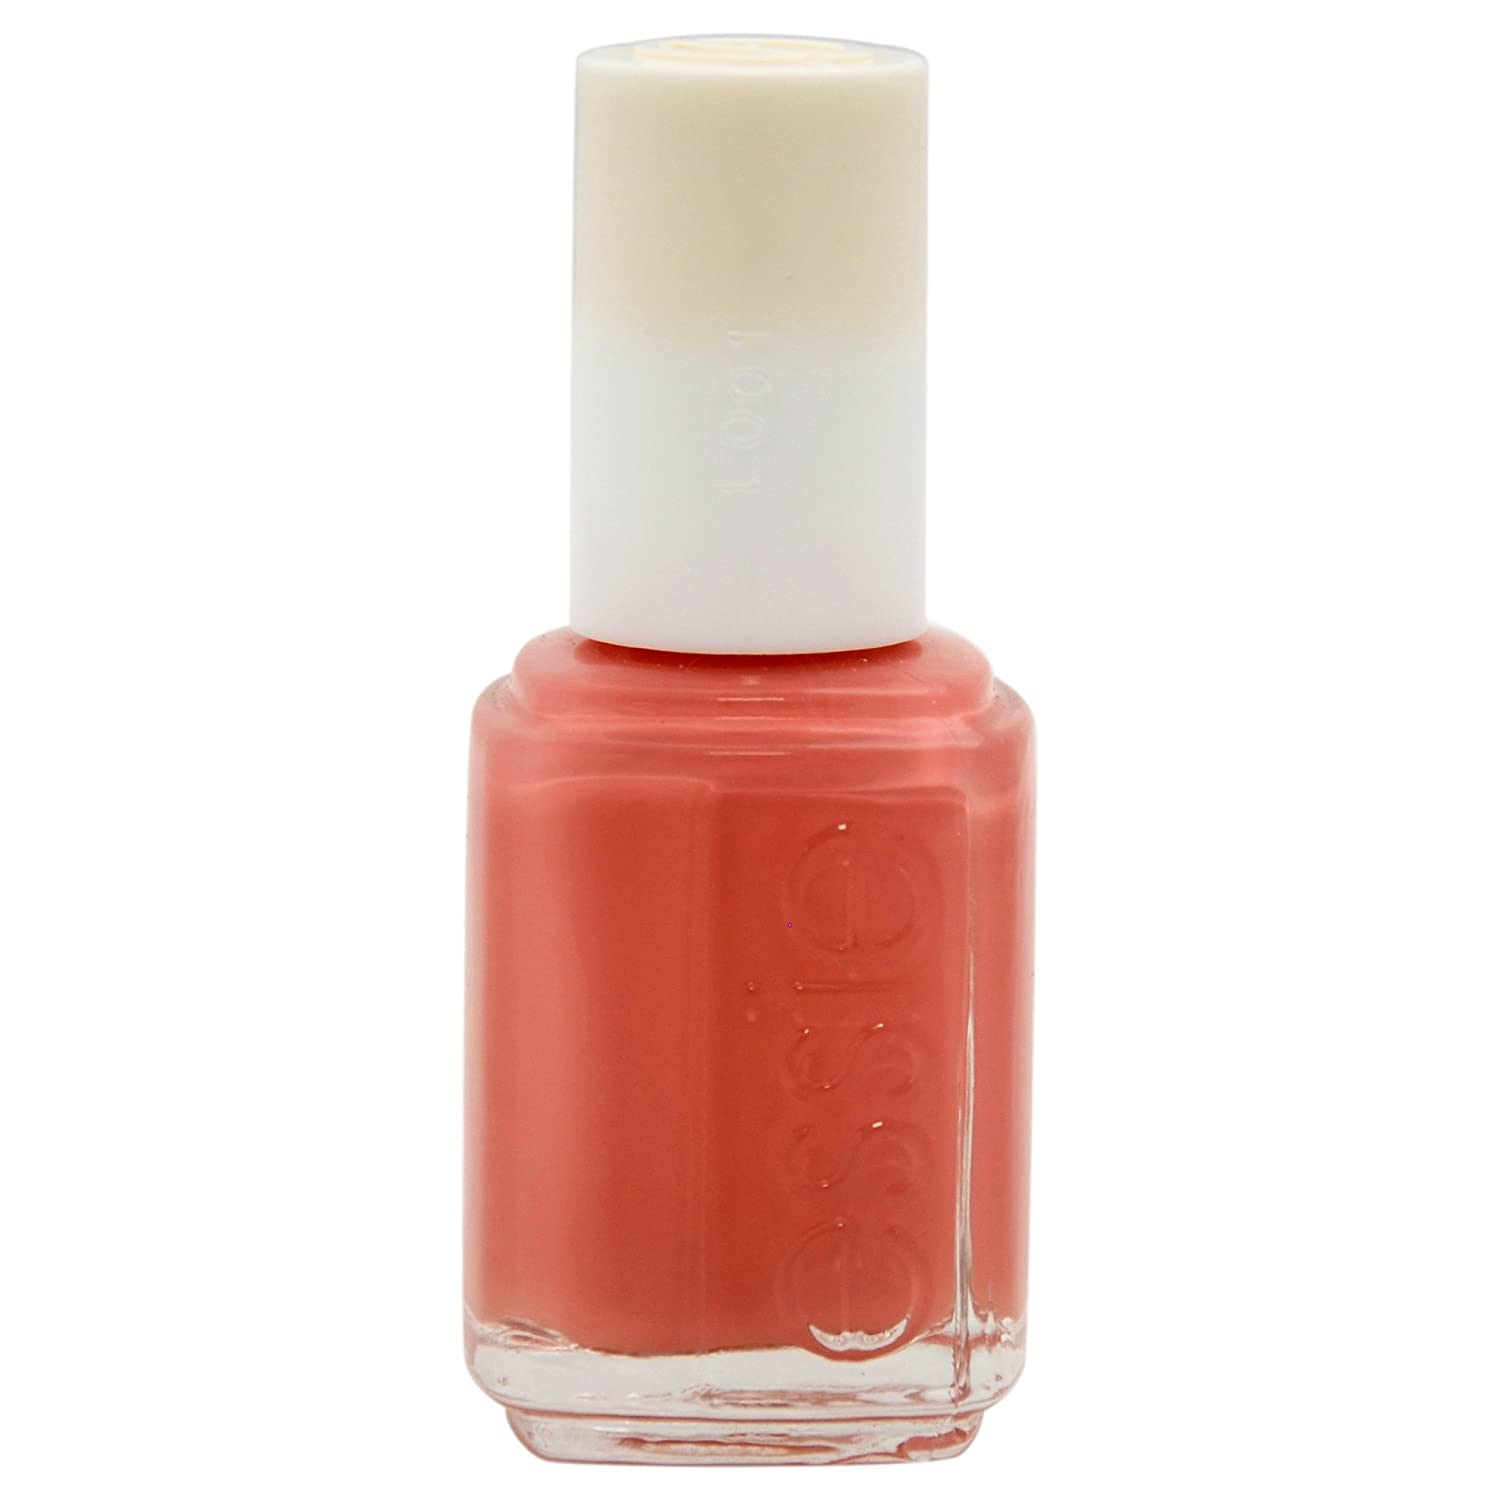 Essie Polish Stone n Roses Nail Polish: Amazon.co.uk: Beauty